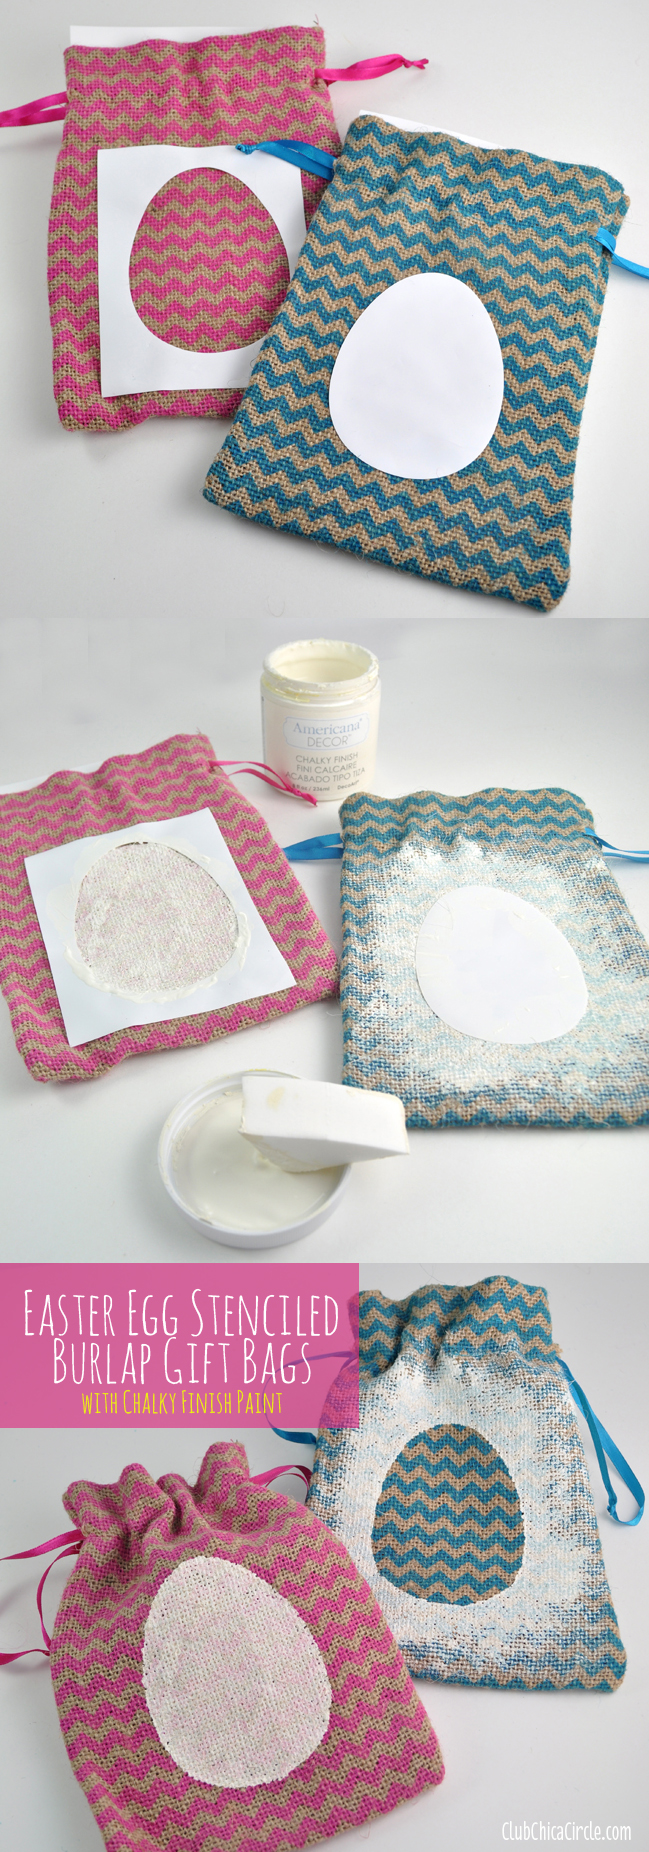 How to Make Chalky Finish Easter Burlap bags